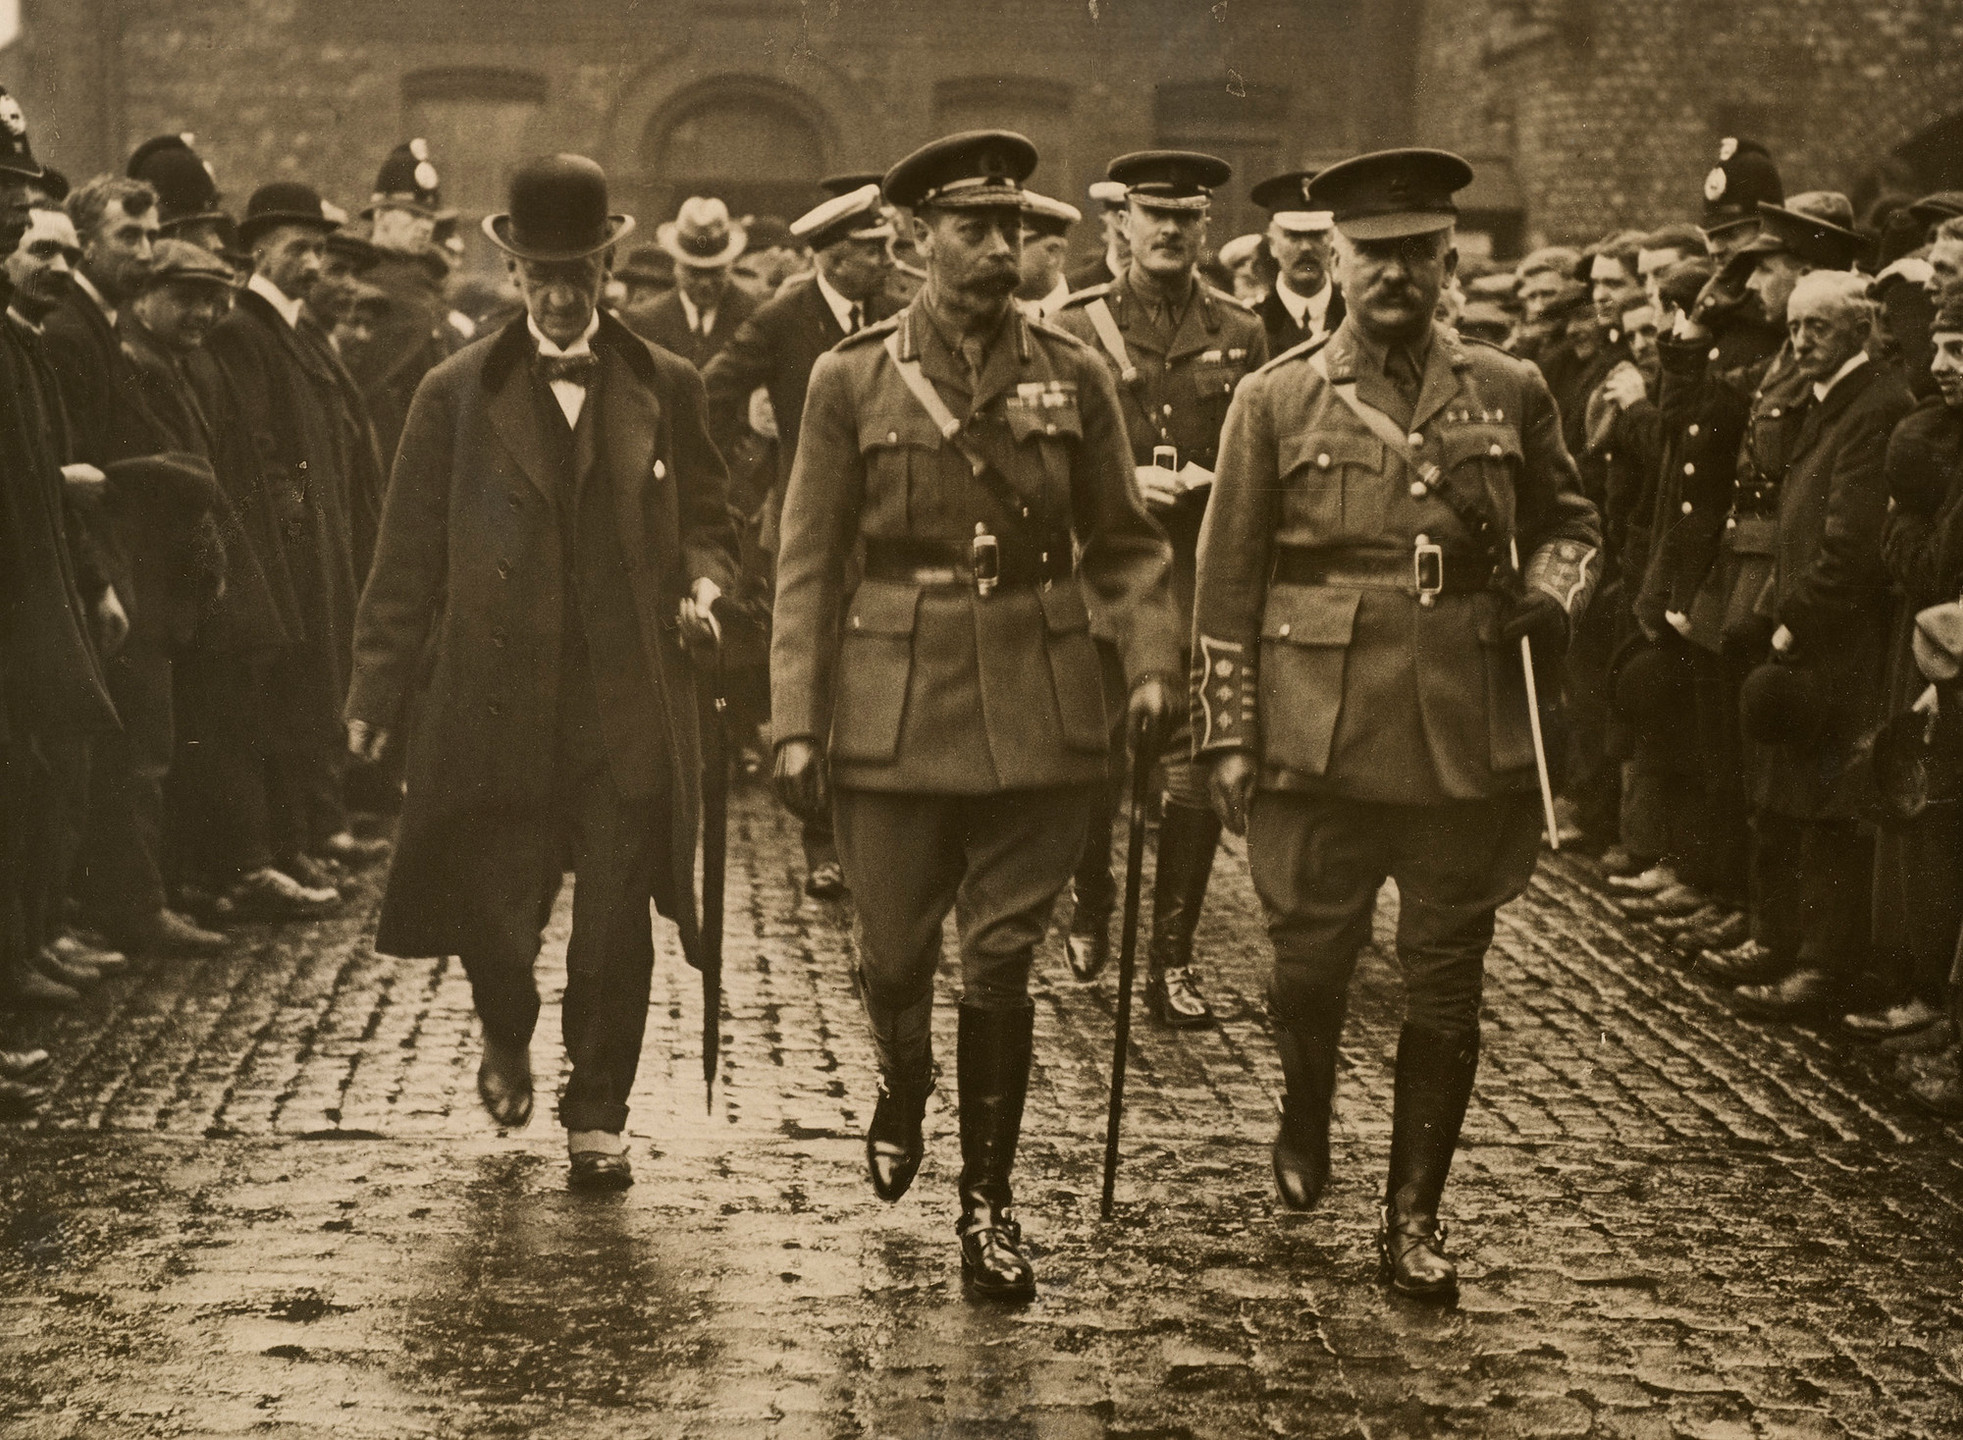 Photograph of, from left to right, Sir H Robertson (1841-1919), King George V (1865-1936) and Colonel H Concanon (1861-1926) walking towards the camera followed by army and navy officers and civilians. Crowds of people stand either side of the group. The three men are visiting the White Star Line Docks.. Royal history, British history, the Great war